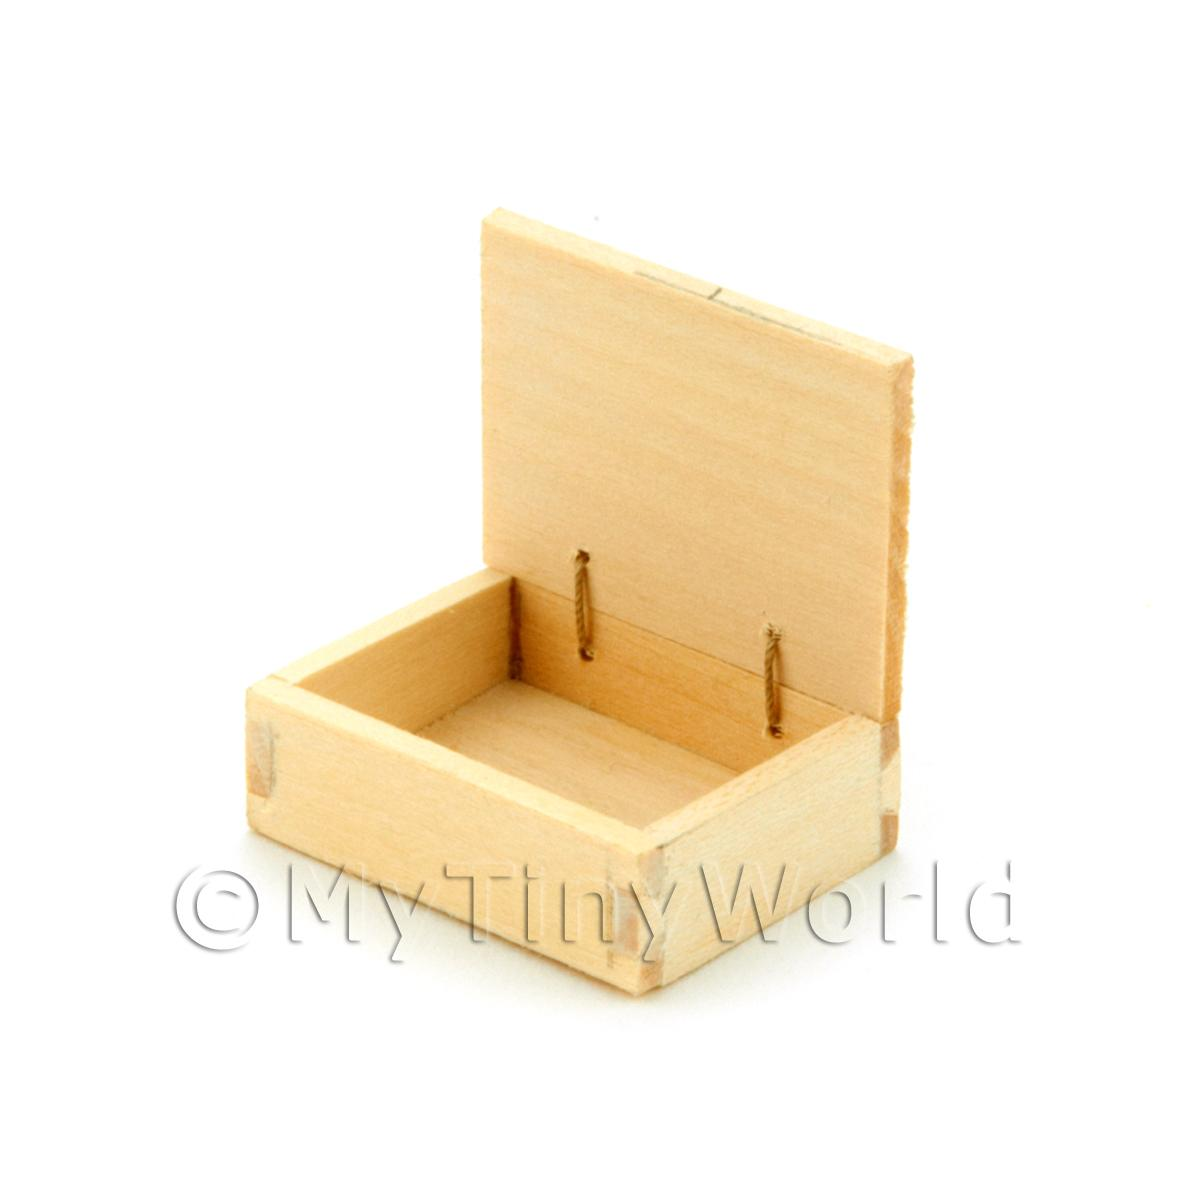 Dolls House Blank Wood Shop Counter Display Box